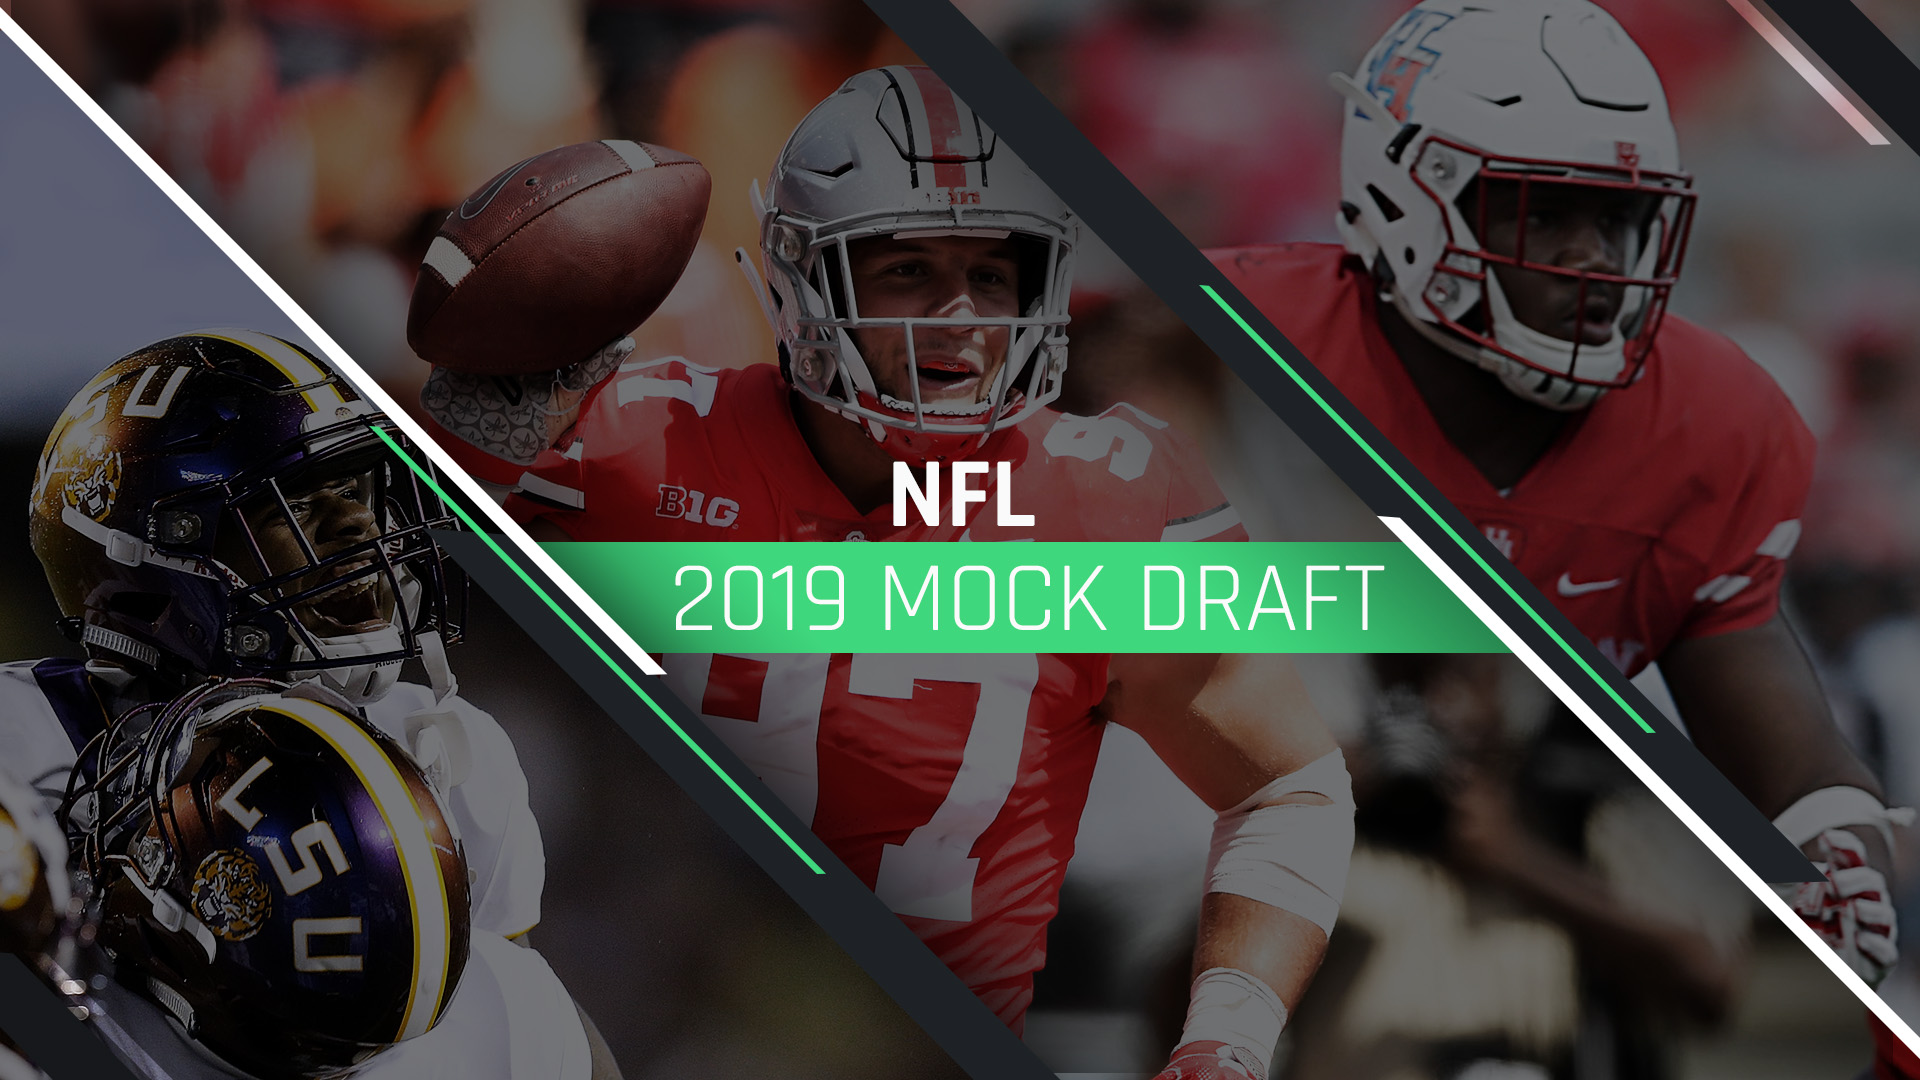 NFL mock draft 2019  Redskins 6c45d2d3c